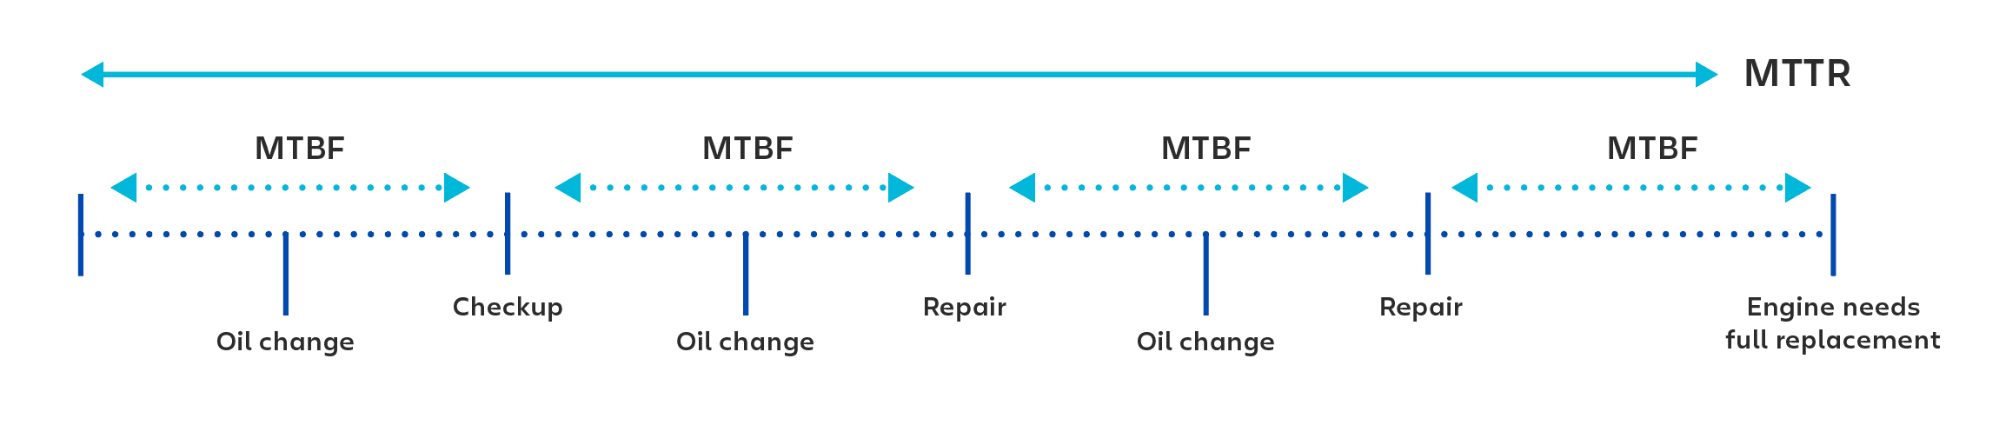 Visual example of using MTBF (mean time between failures) when calculating the time between each checkup or repair.